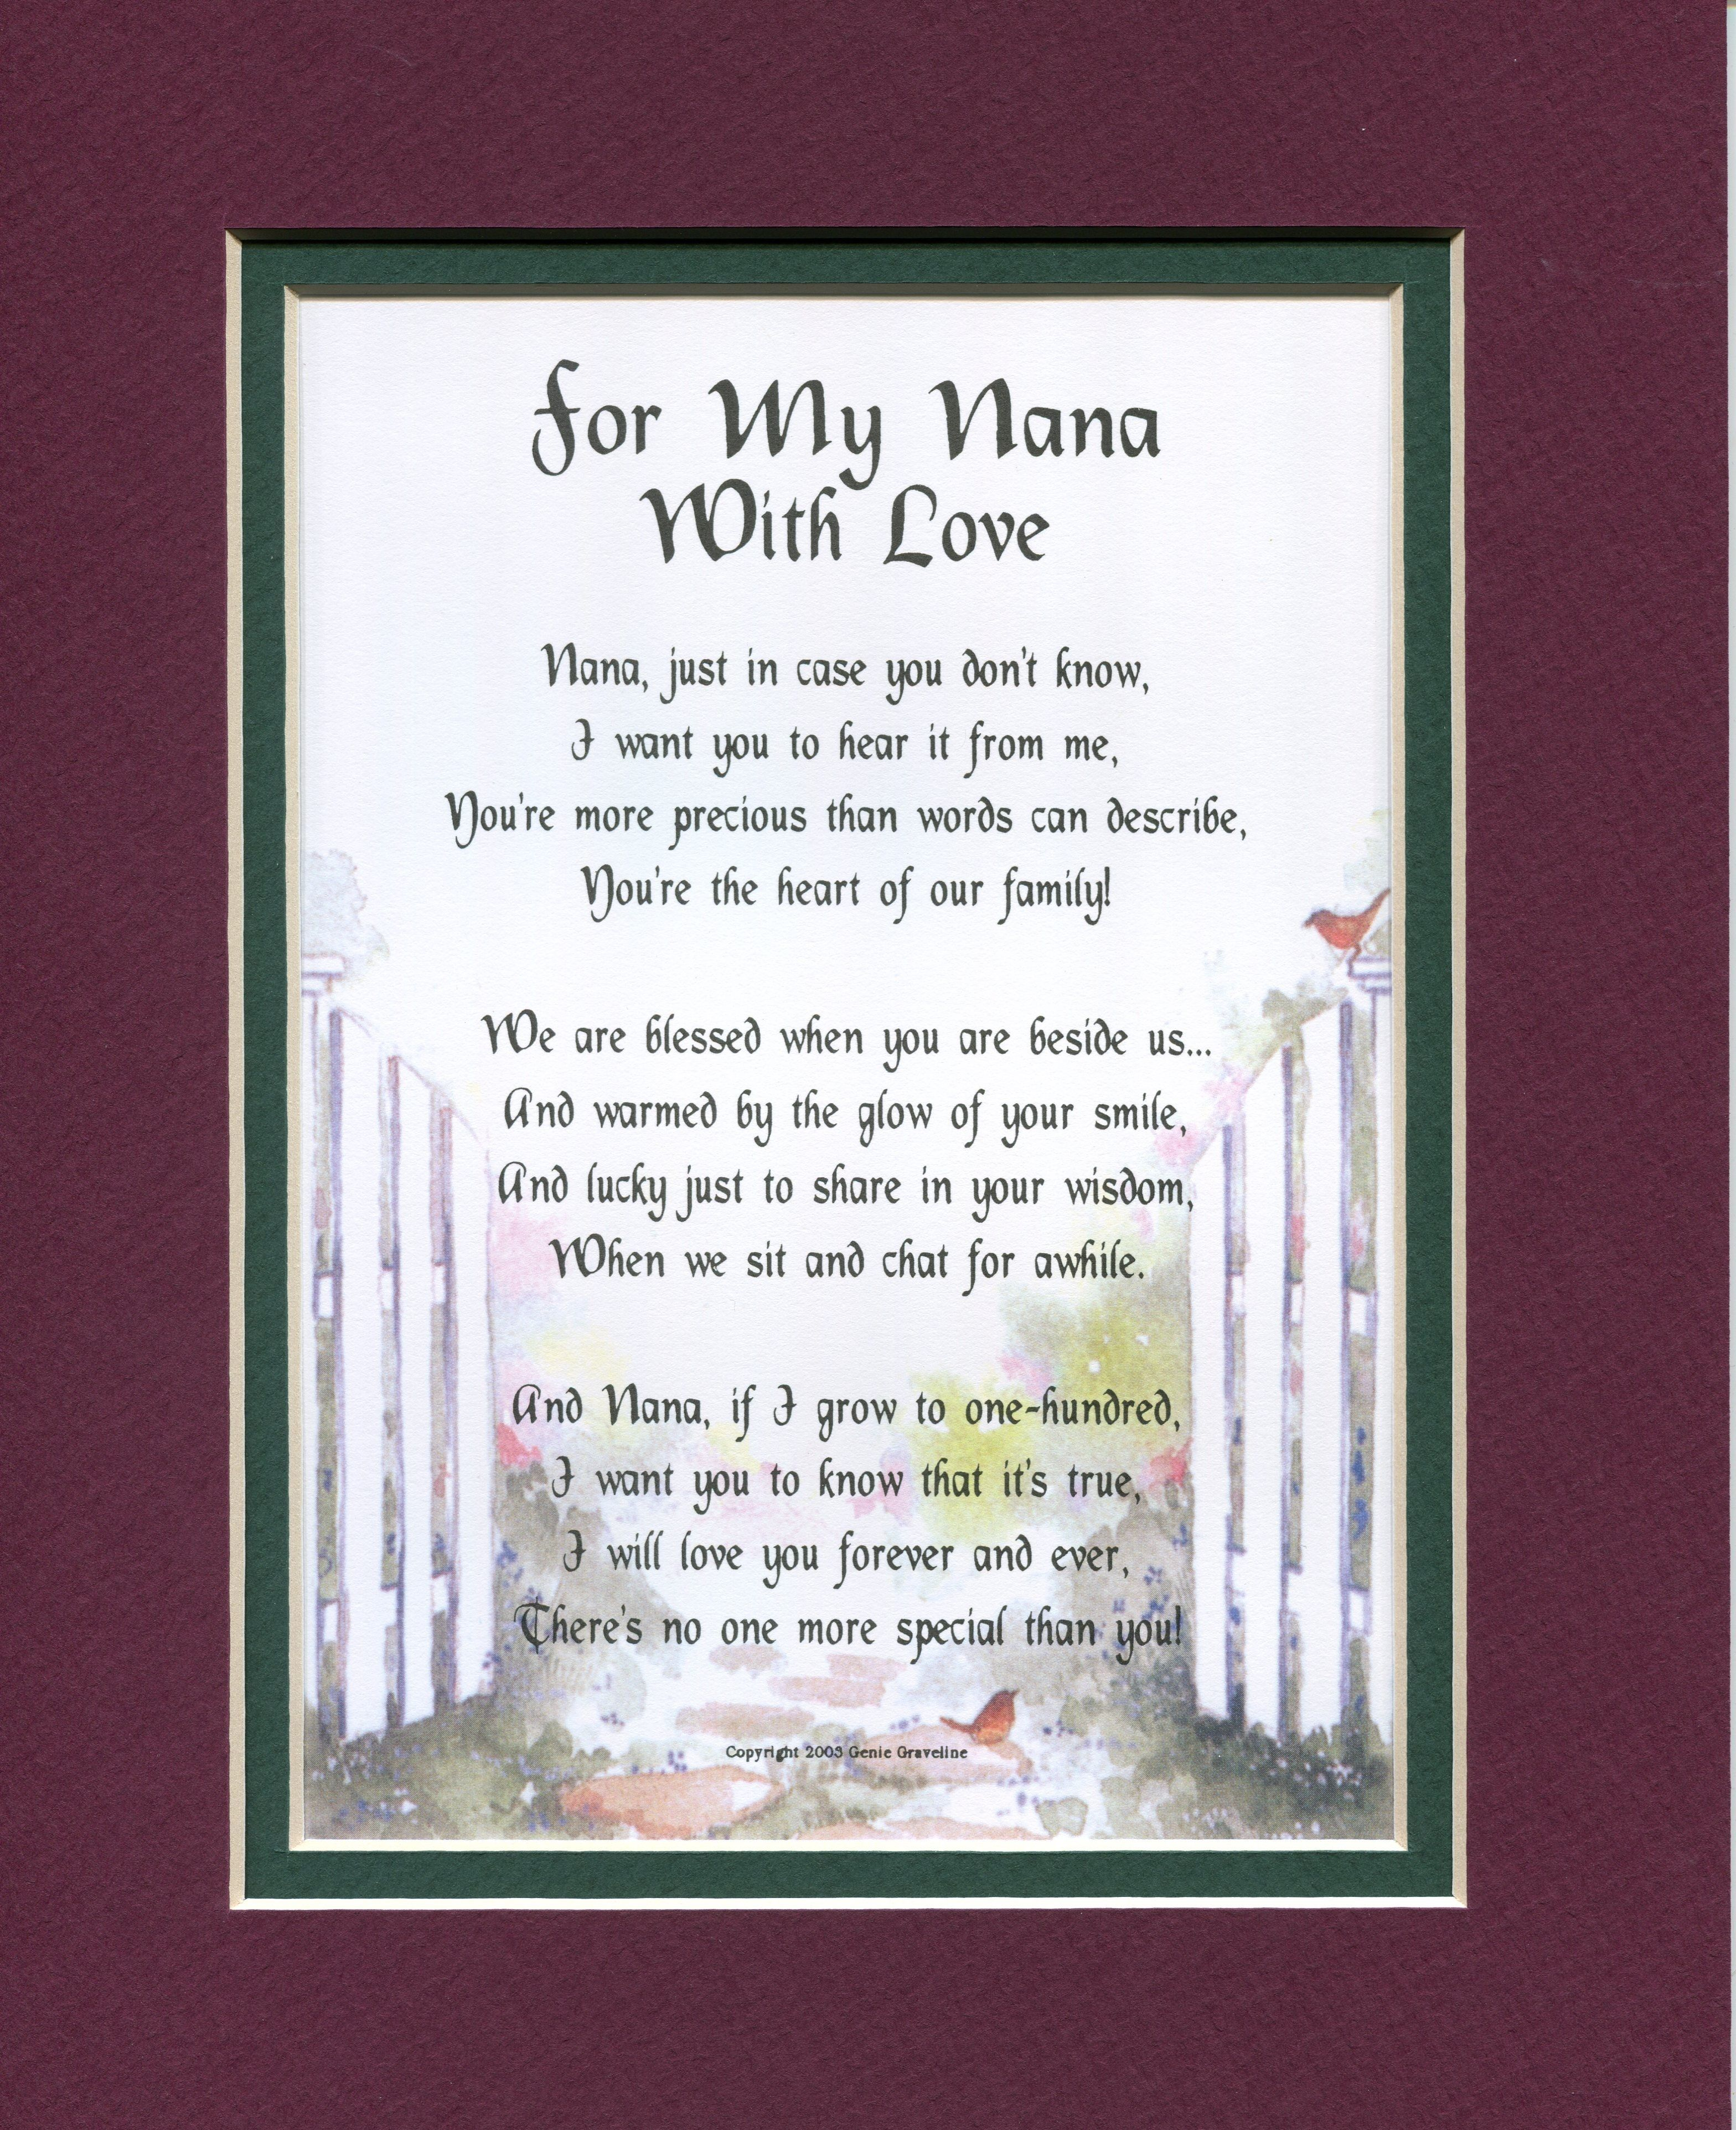 For my nana with love nana gifts mom poems daughter poems